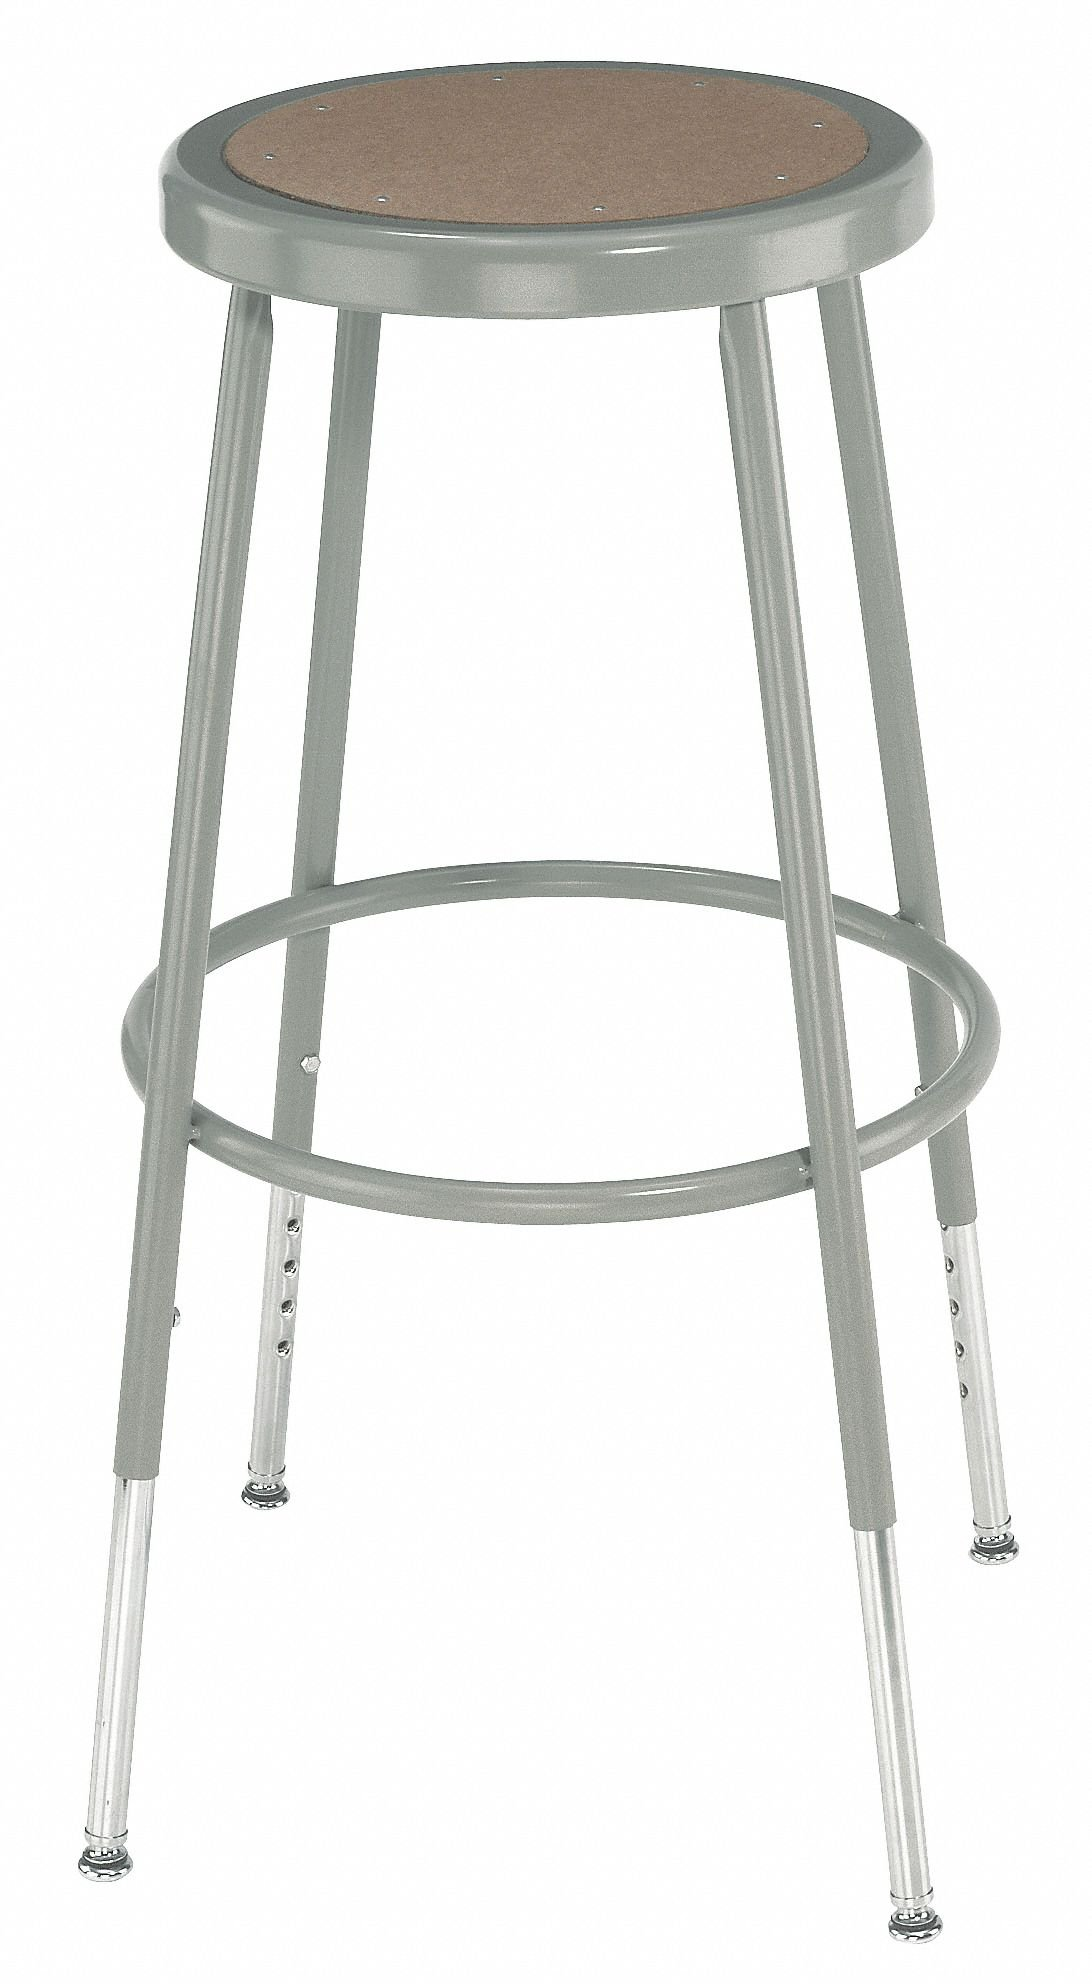 Round Stool with 19'' to 27'' Seat Height Range and 300 lb. Weight Capacity, Gray